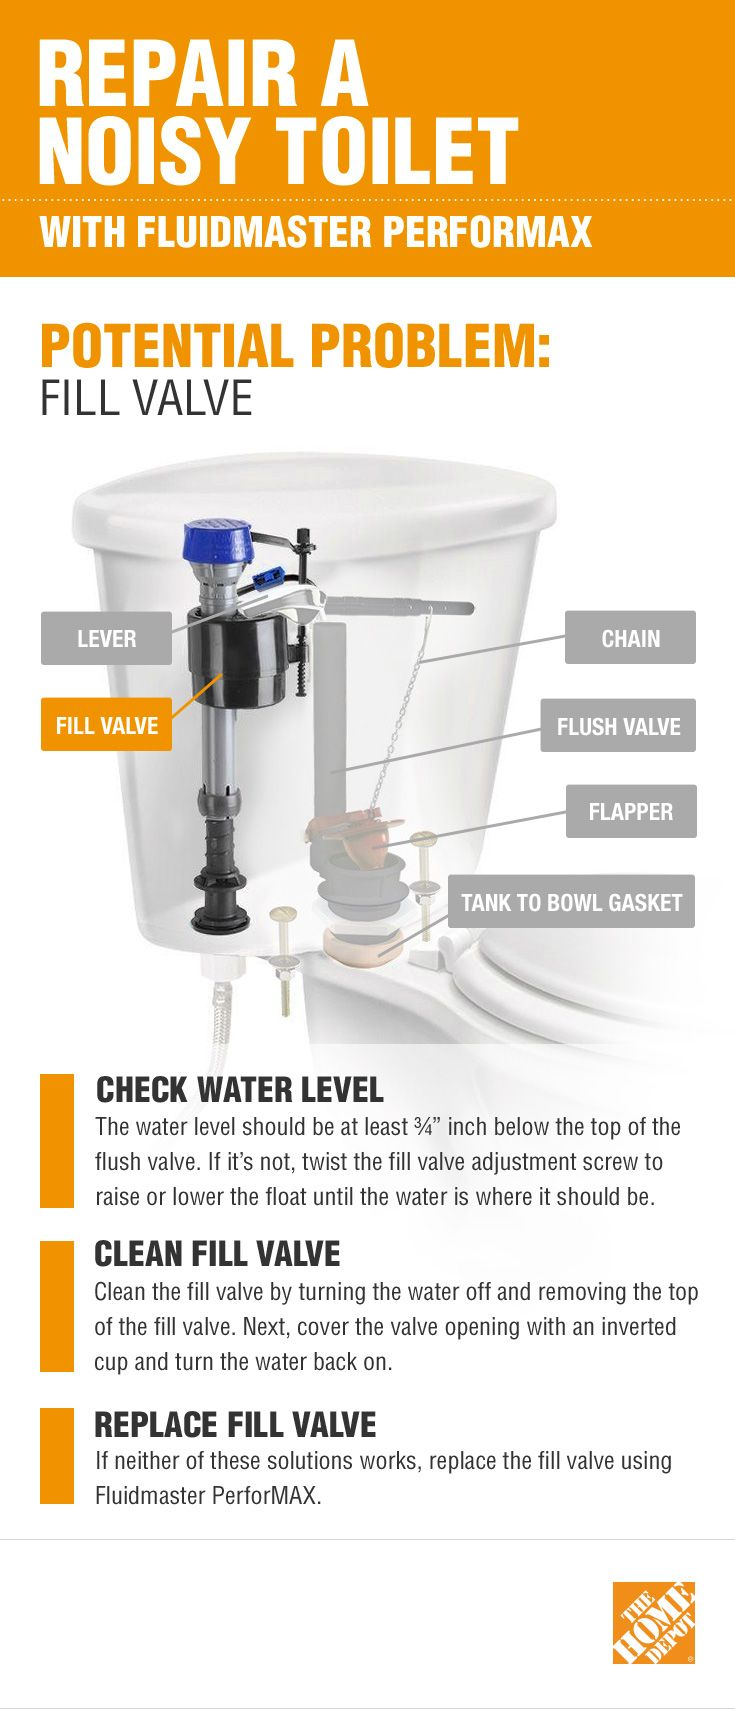 "If your toilet is noisy, the problem may be the fill valve. Check the water level inside the tank and make sure it's about ¾"" below the top of the flush valve. If that doesn't help, click the infographic to get more details and shop Fluidmaster PerforMAX if you need to replace your toilet's parts."